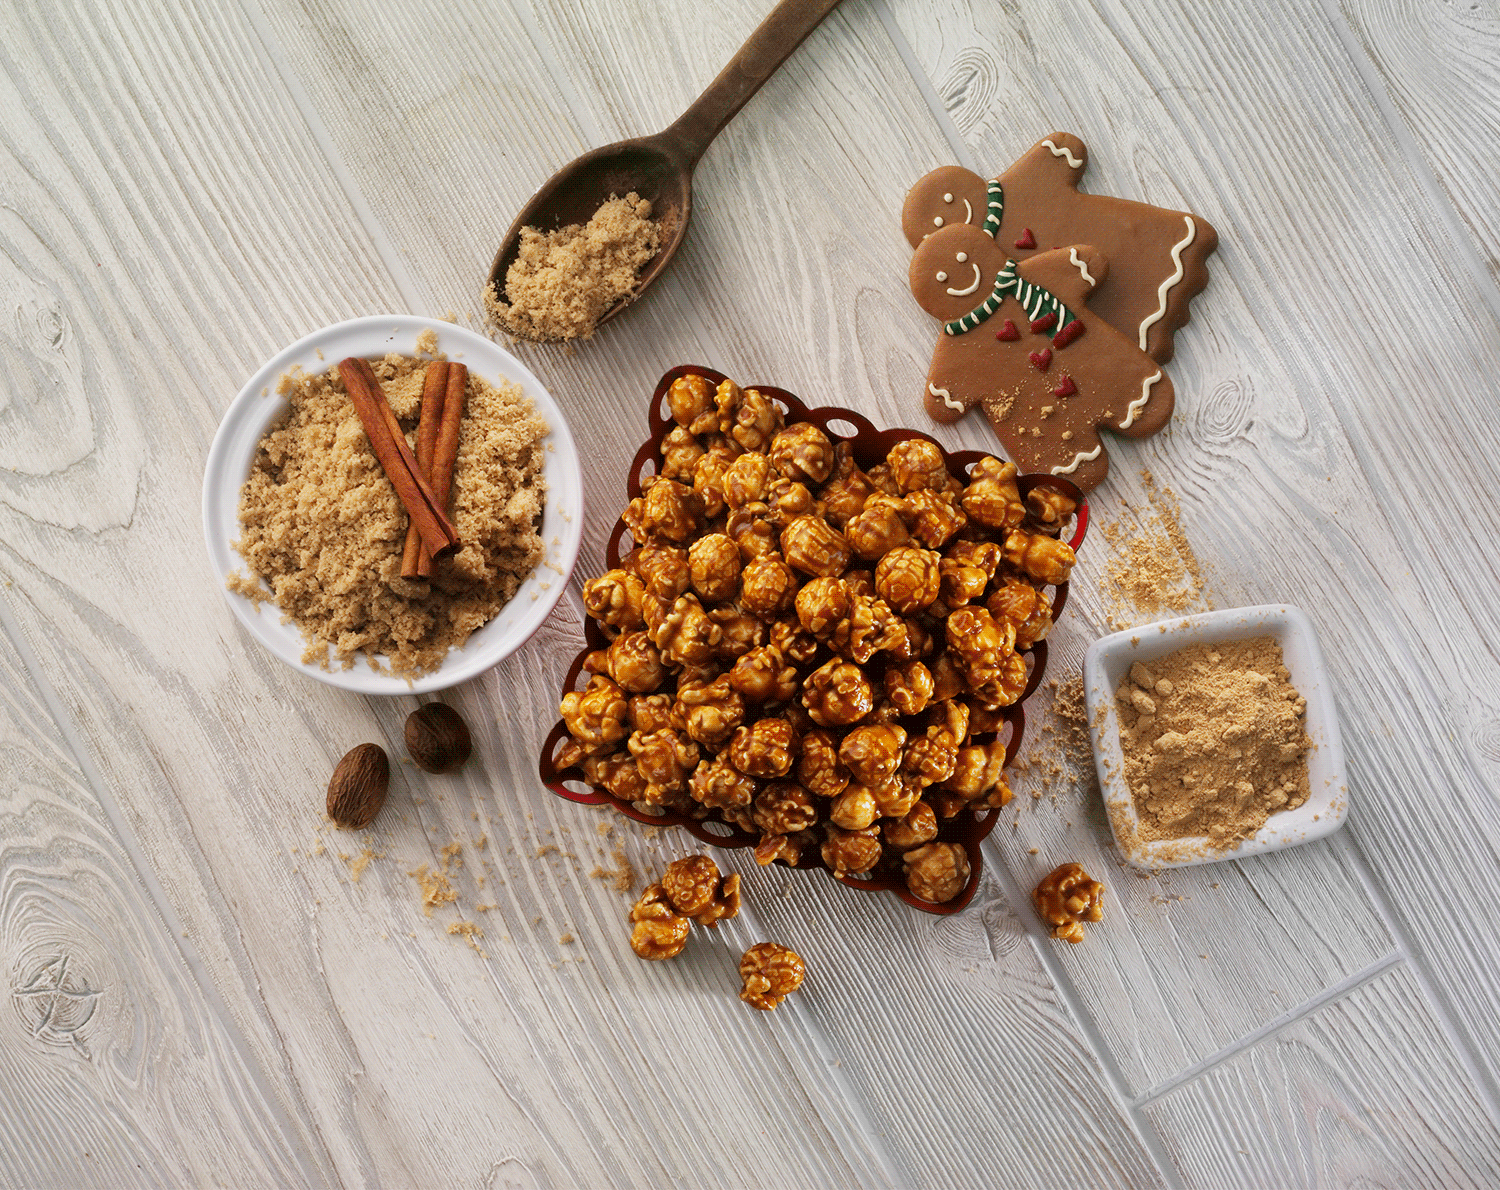 Gingerbread CaramelCrisp® - An original holiday recipe–back for a limited time! Crushed ginger, warm cinnamon and a hint of nutmeg gently mixed with buttery CaramelCrisp® make this recipe a must-have for the holidays.